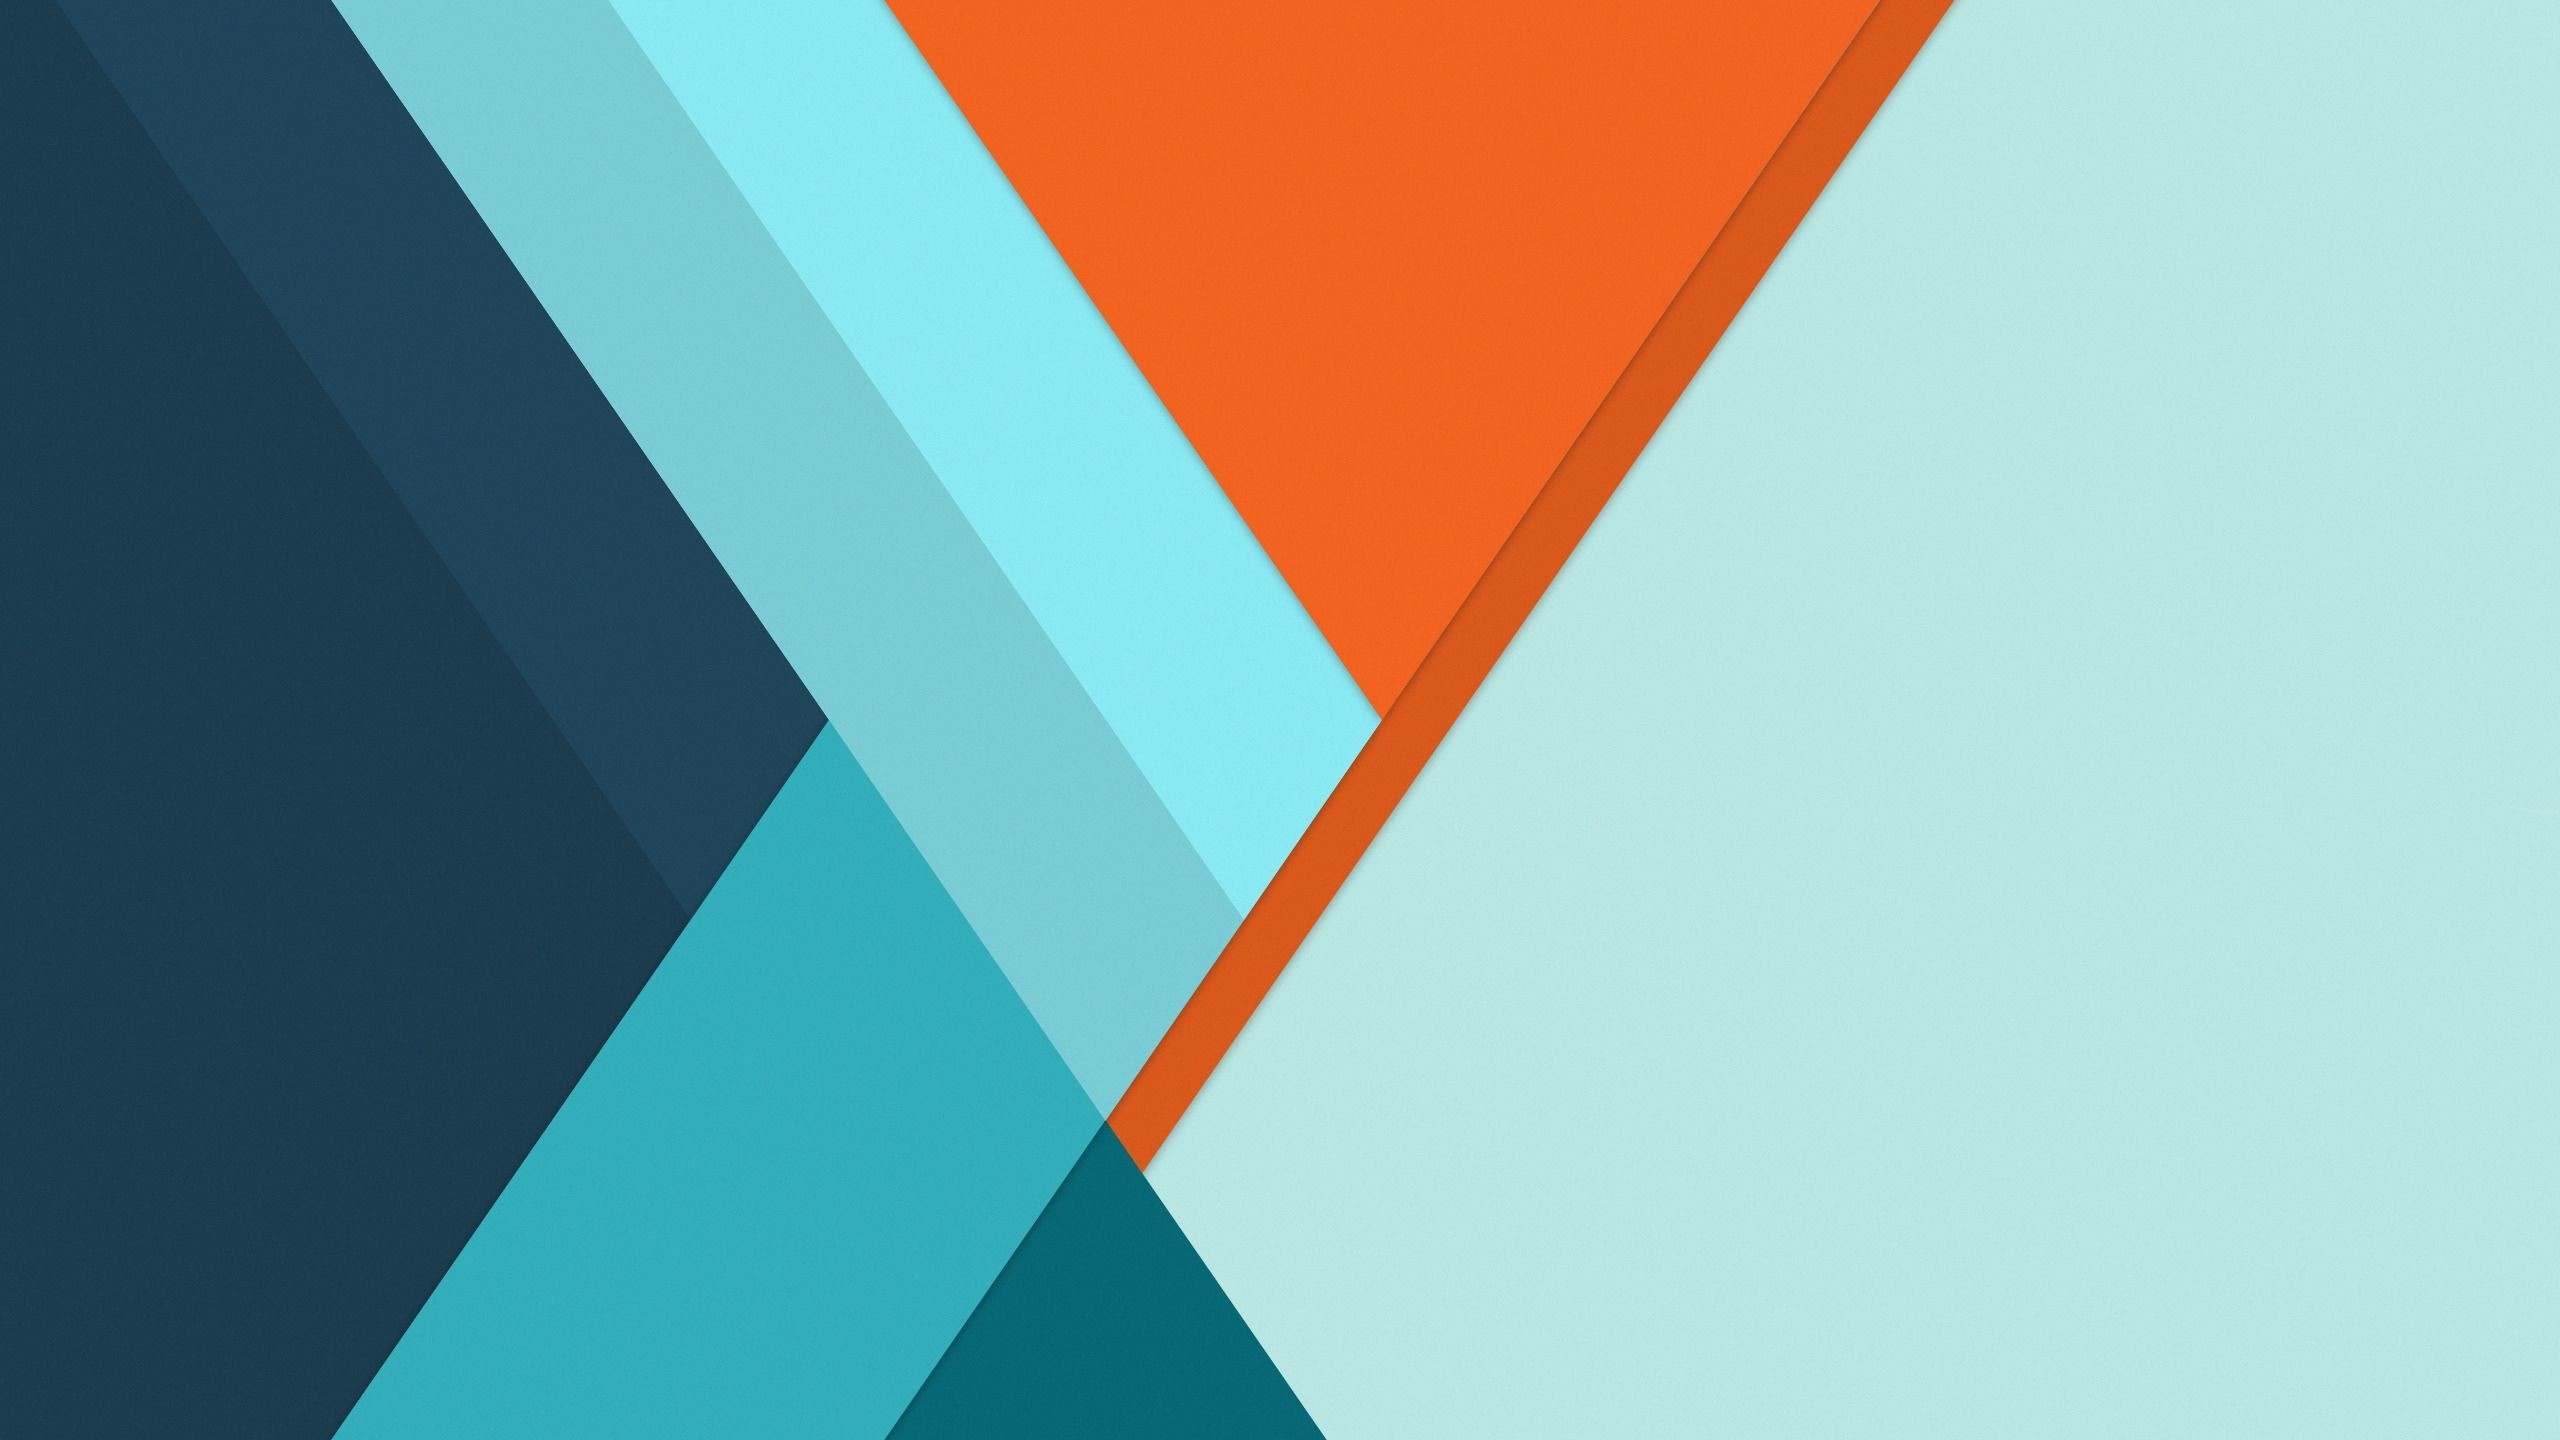 Blue Material Design Minimal YouTube Channel Cover